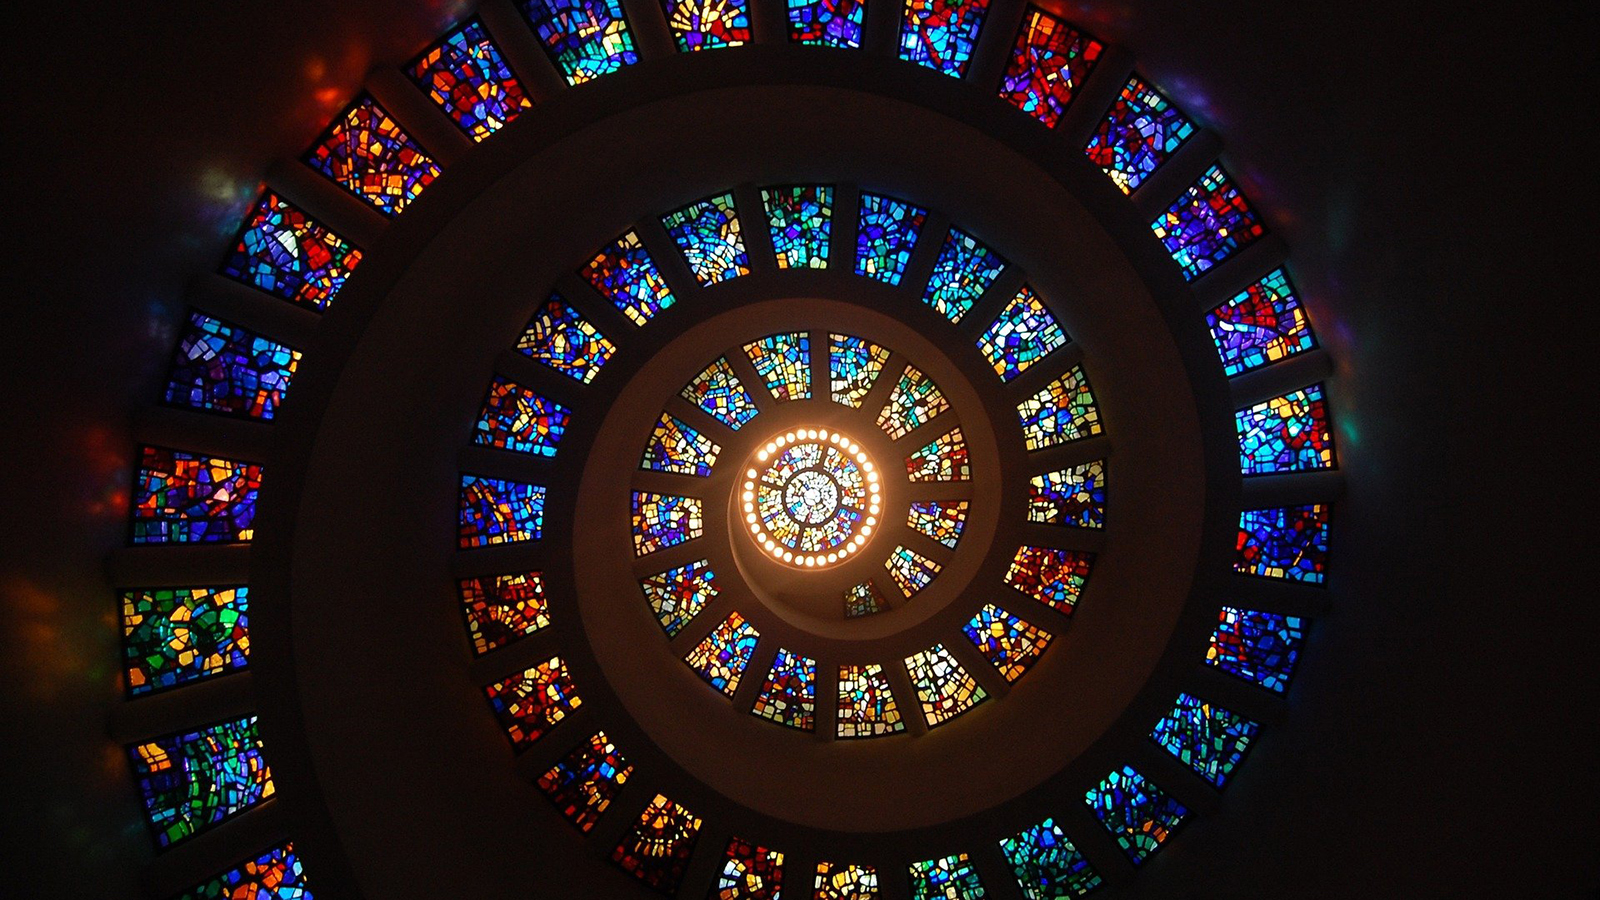 Spiral of stained glass windows.